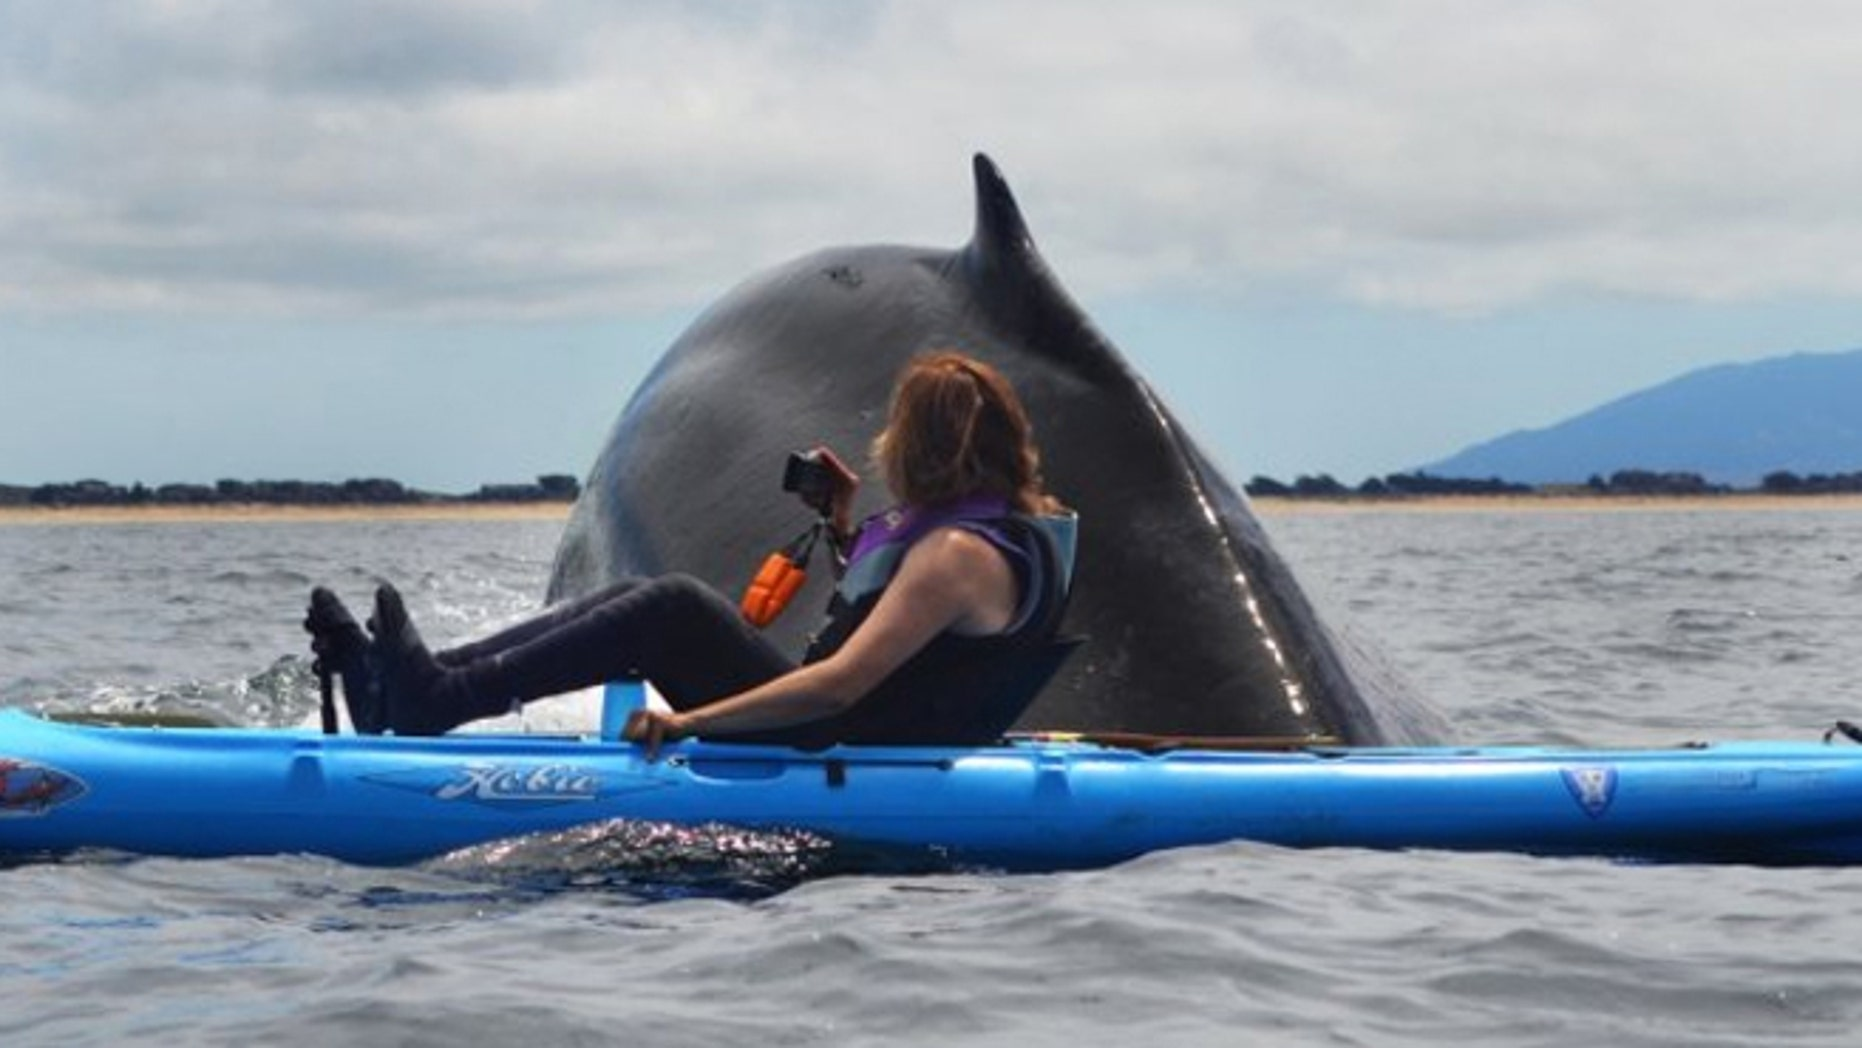 A humpback whale surfaced next to Karen Hatch who watched from her kayak.